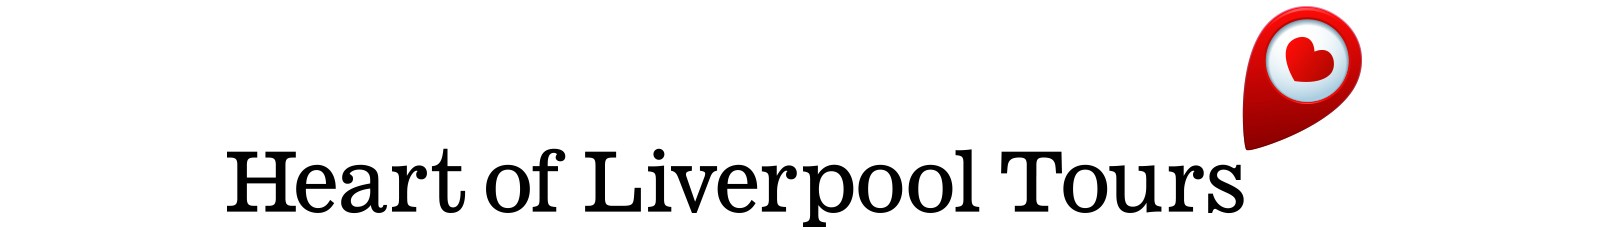 Heart of Liverpool Tours